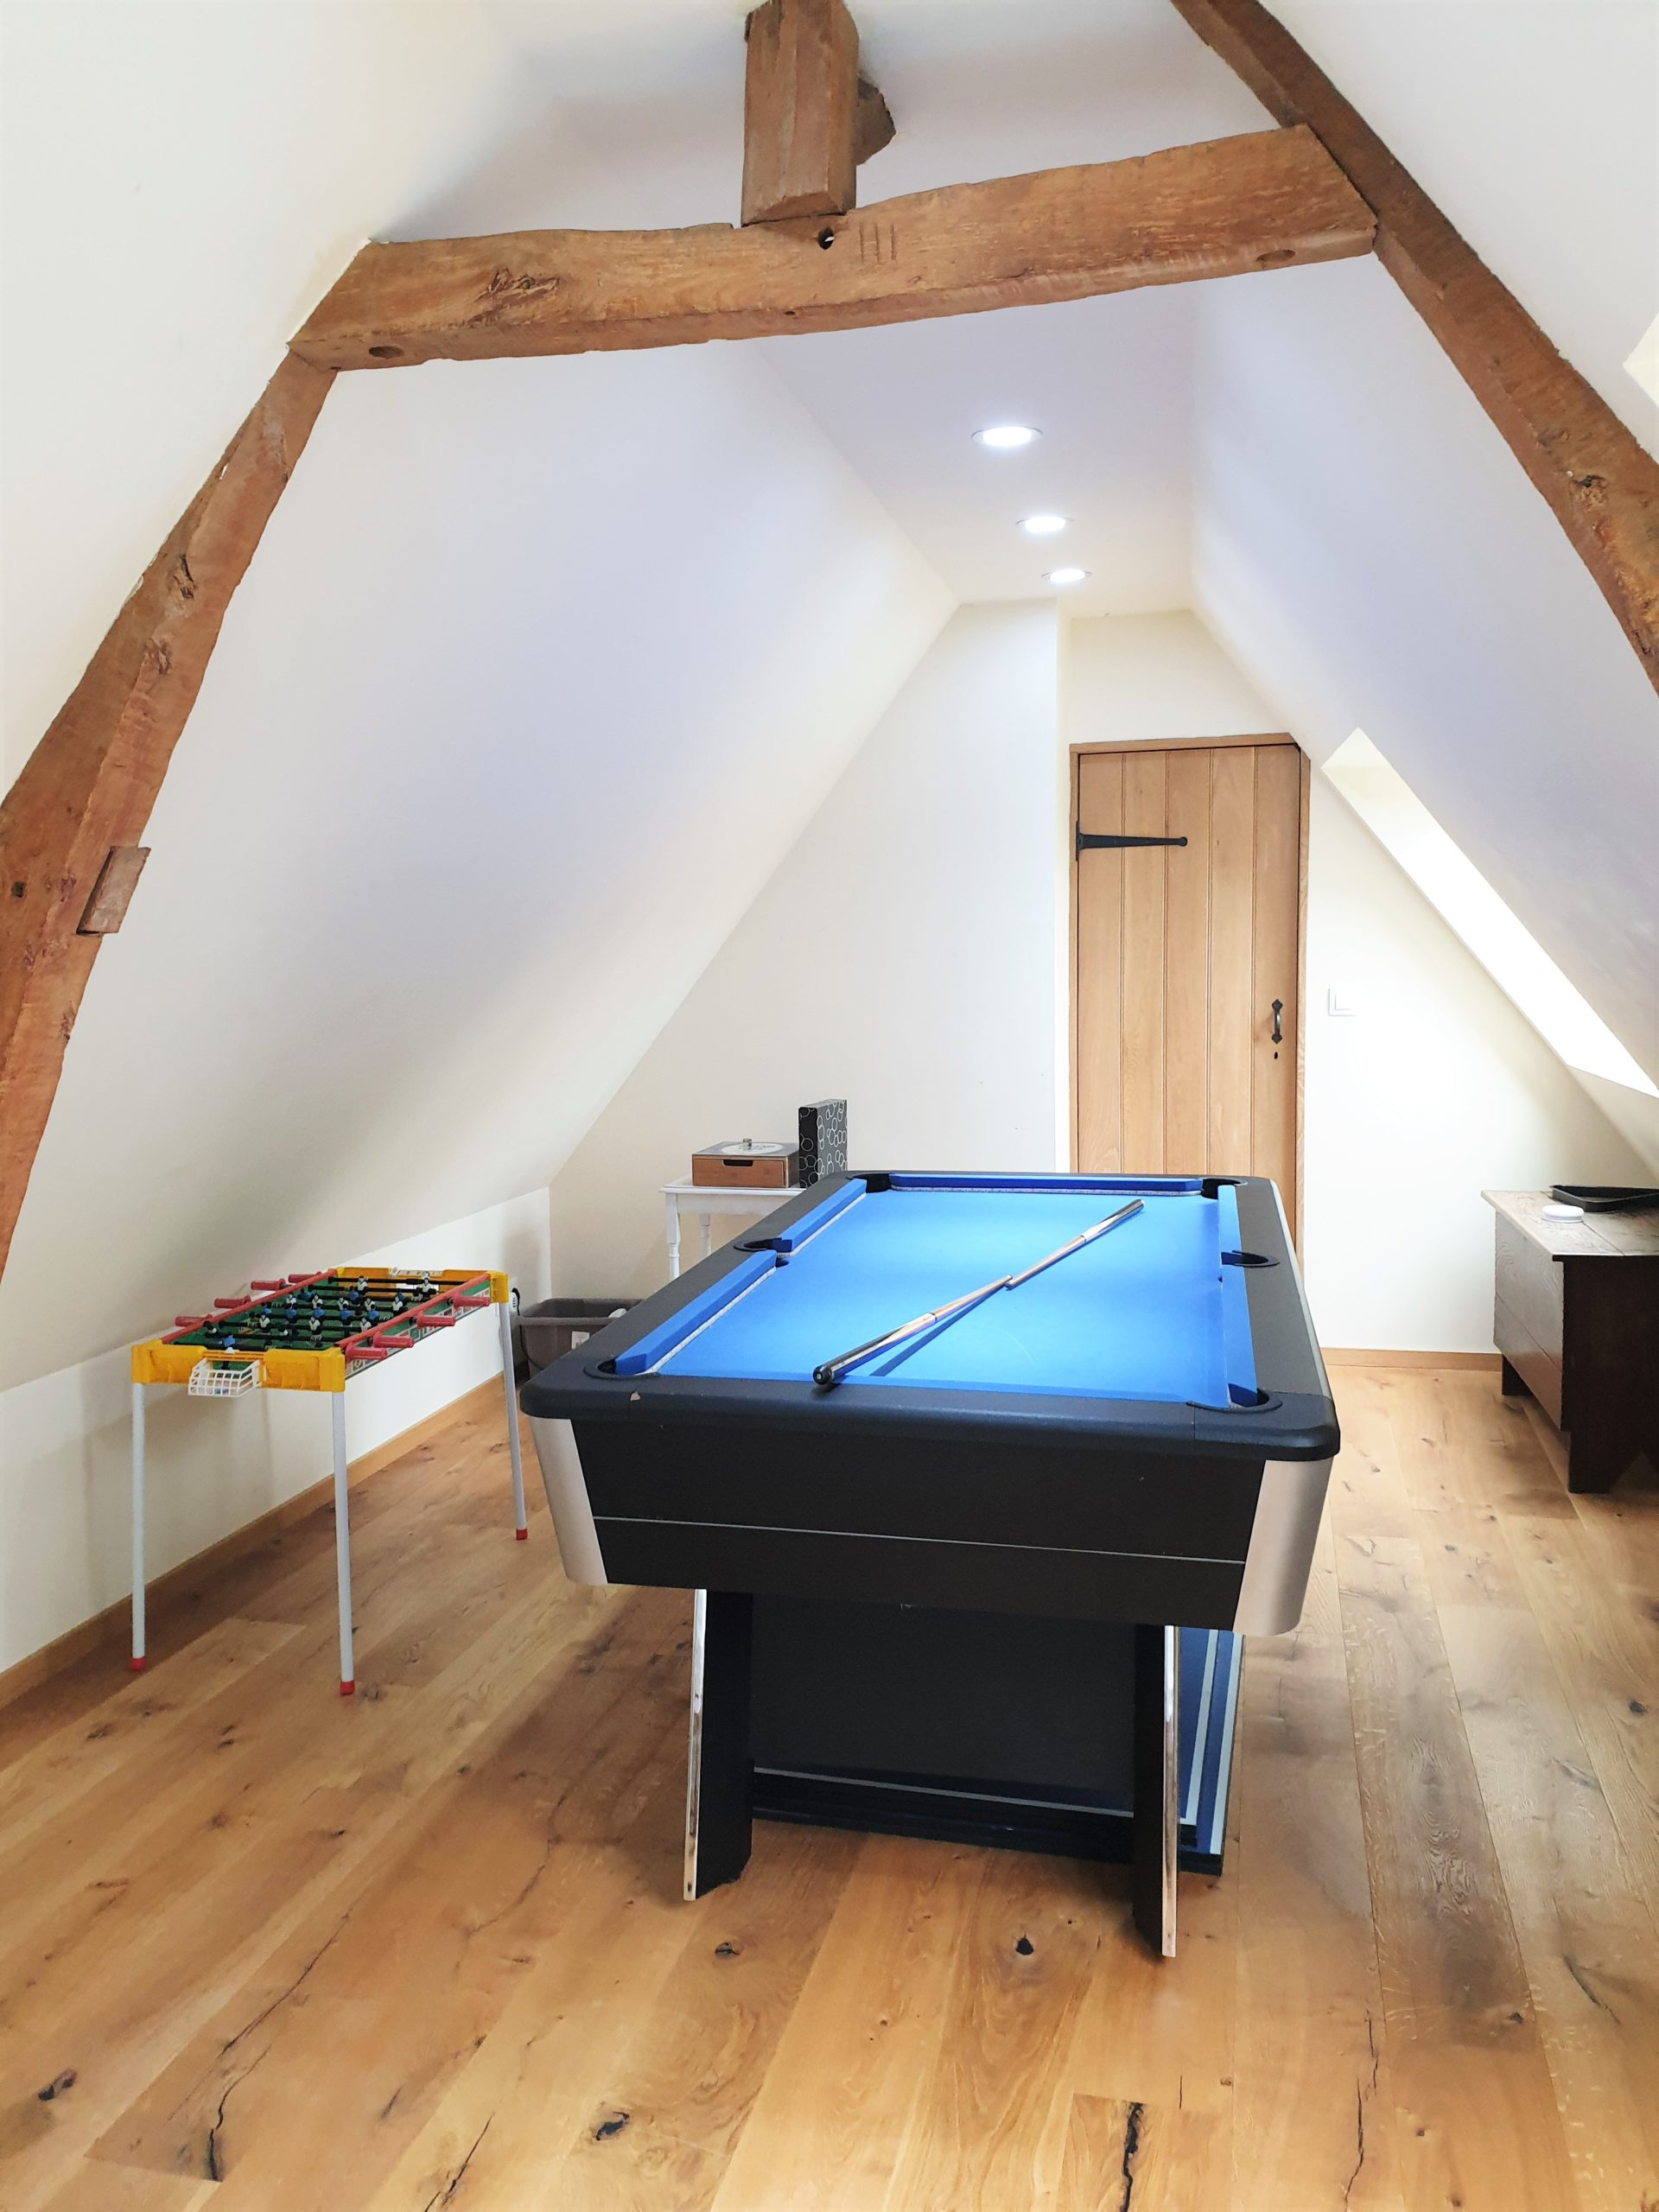 Pool Table and Table Football in the upstairs games area